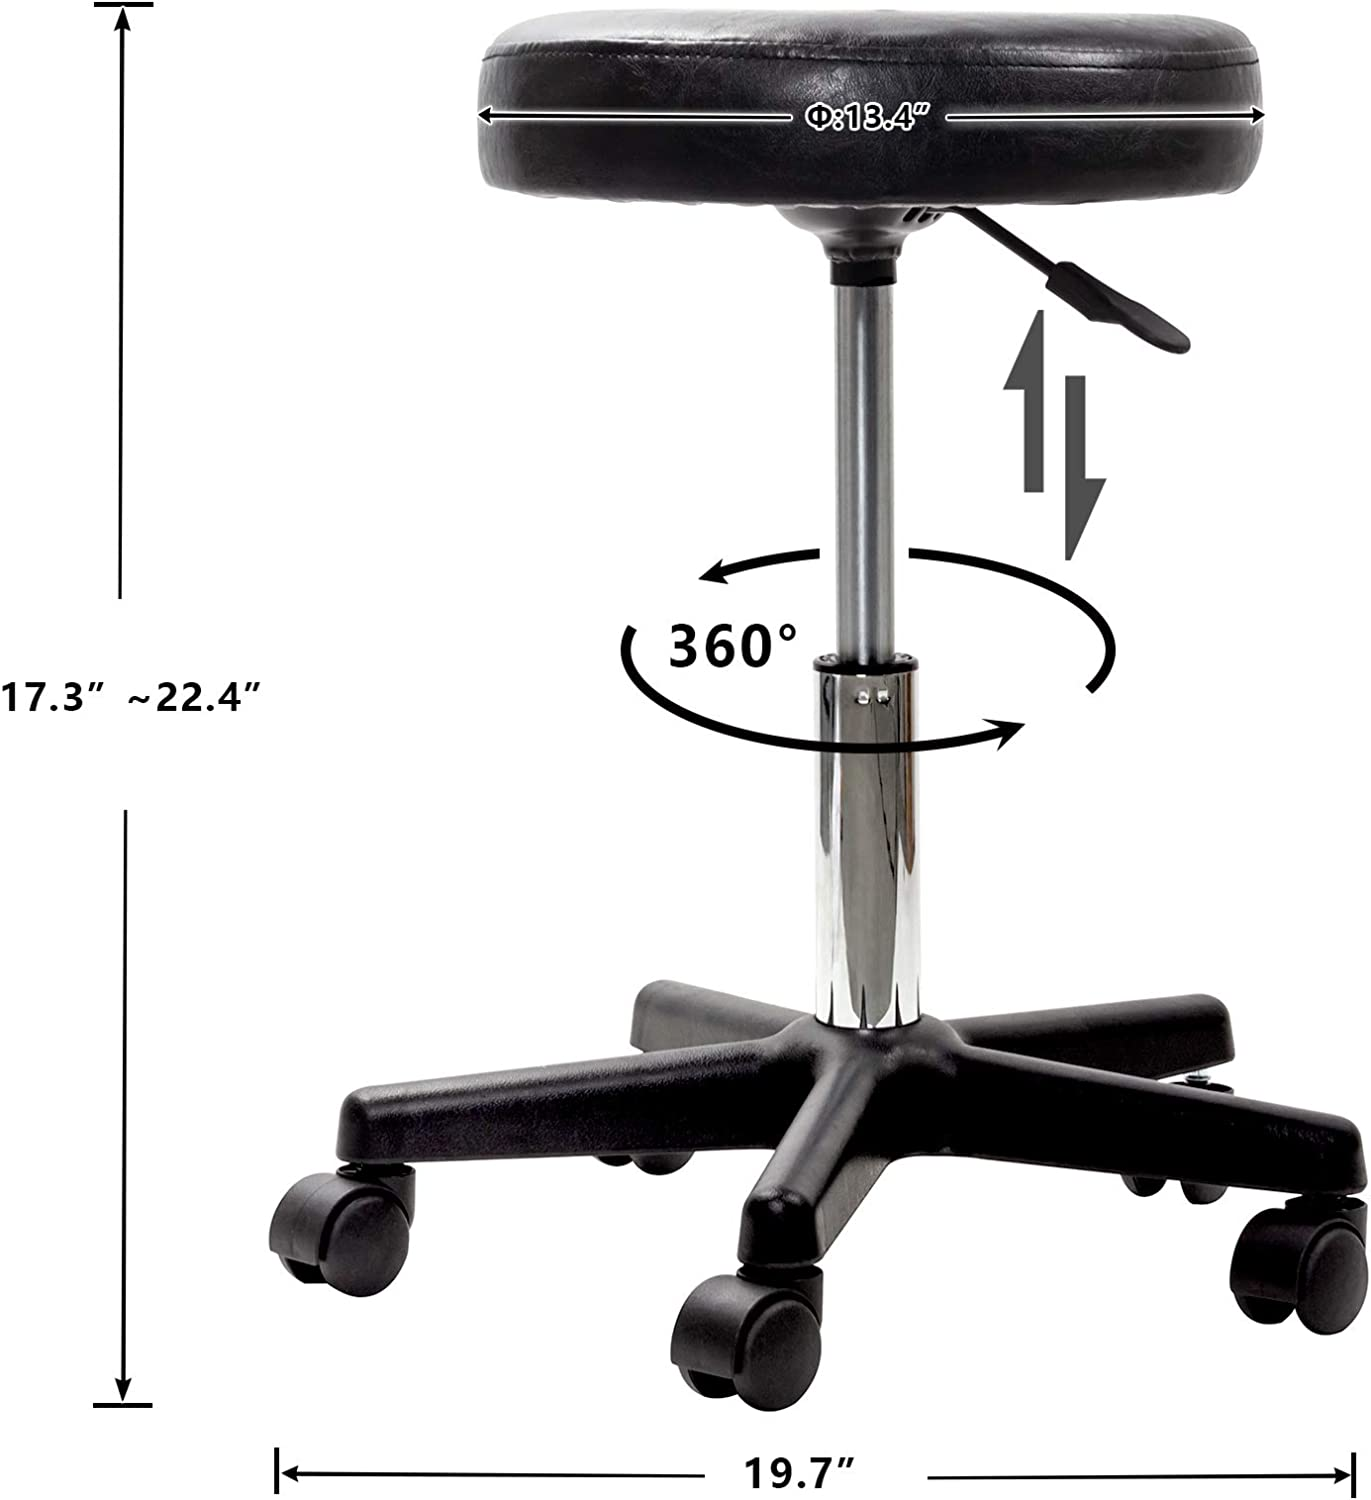 Display4top Black Adjustable Hydraulic Rolling Swivel Stool Chair with Wheels for Massage Spa Salon Beauty Manicure Tattoo Therapy Office Hairdressing Shops